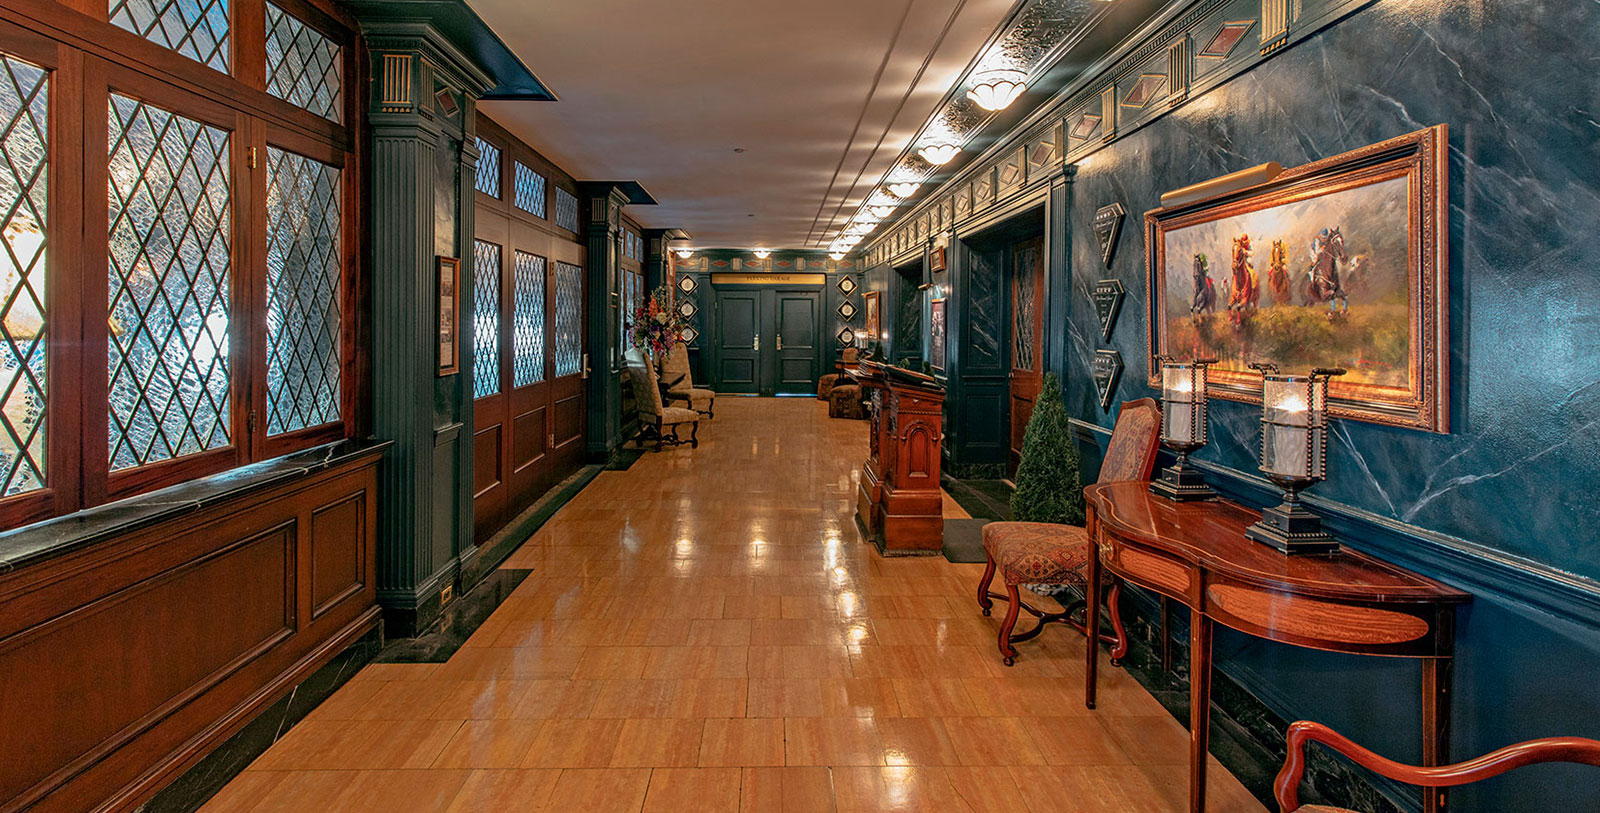 Image of English Grille Hallway The Brown Hotel, 1923, Member of Historic Hotels of America, in Louisville, Kentucky, Explore